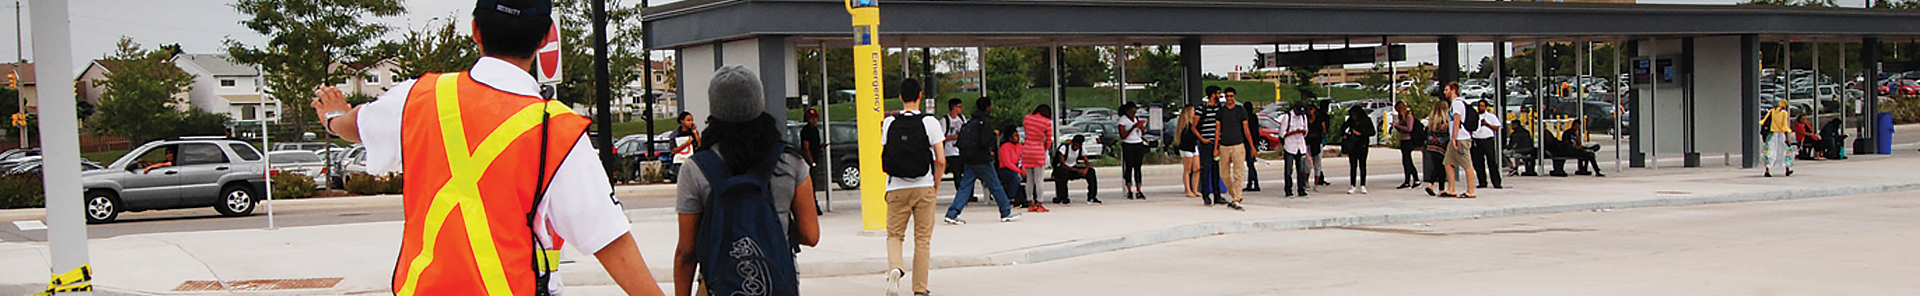 Guard stopping traffic to let students cross the road, in front of the bus terminal